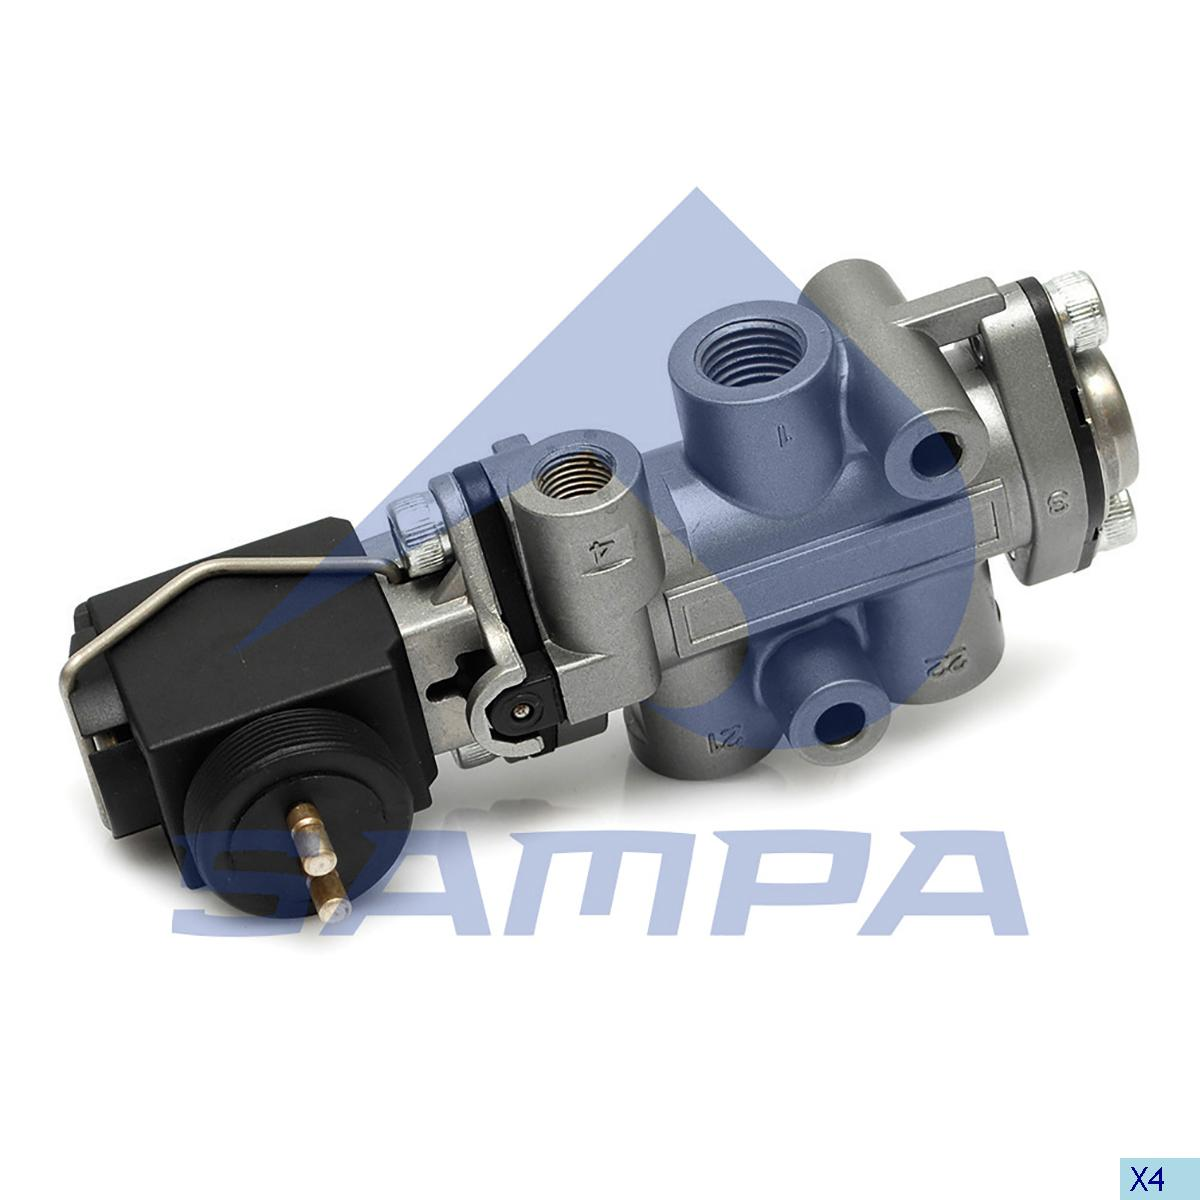 Valve, Gear Box Housing, Daf, Gear Box